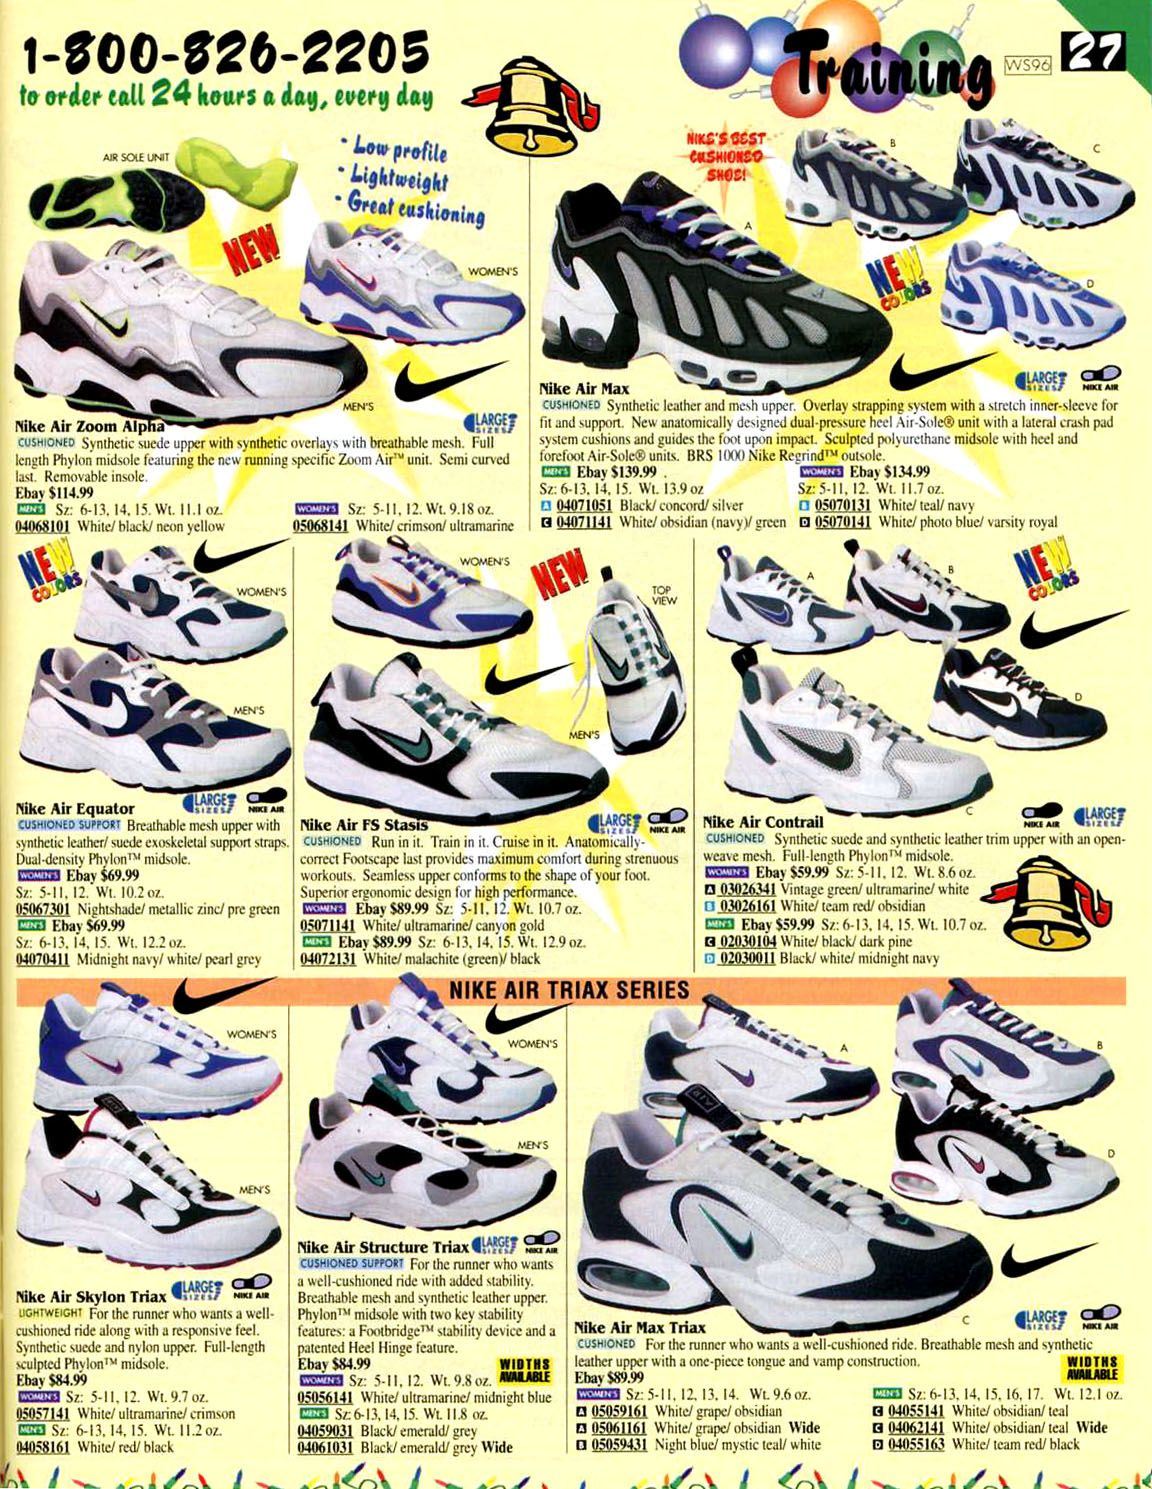 Flashback to '96: Nike Zoom Turf '96